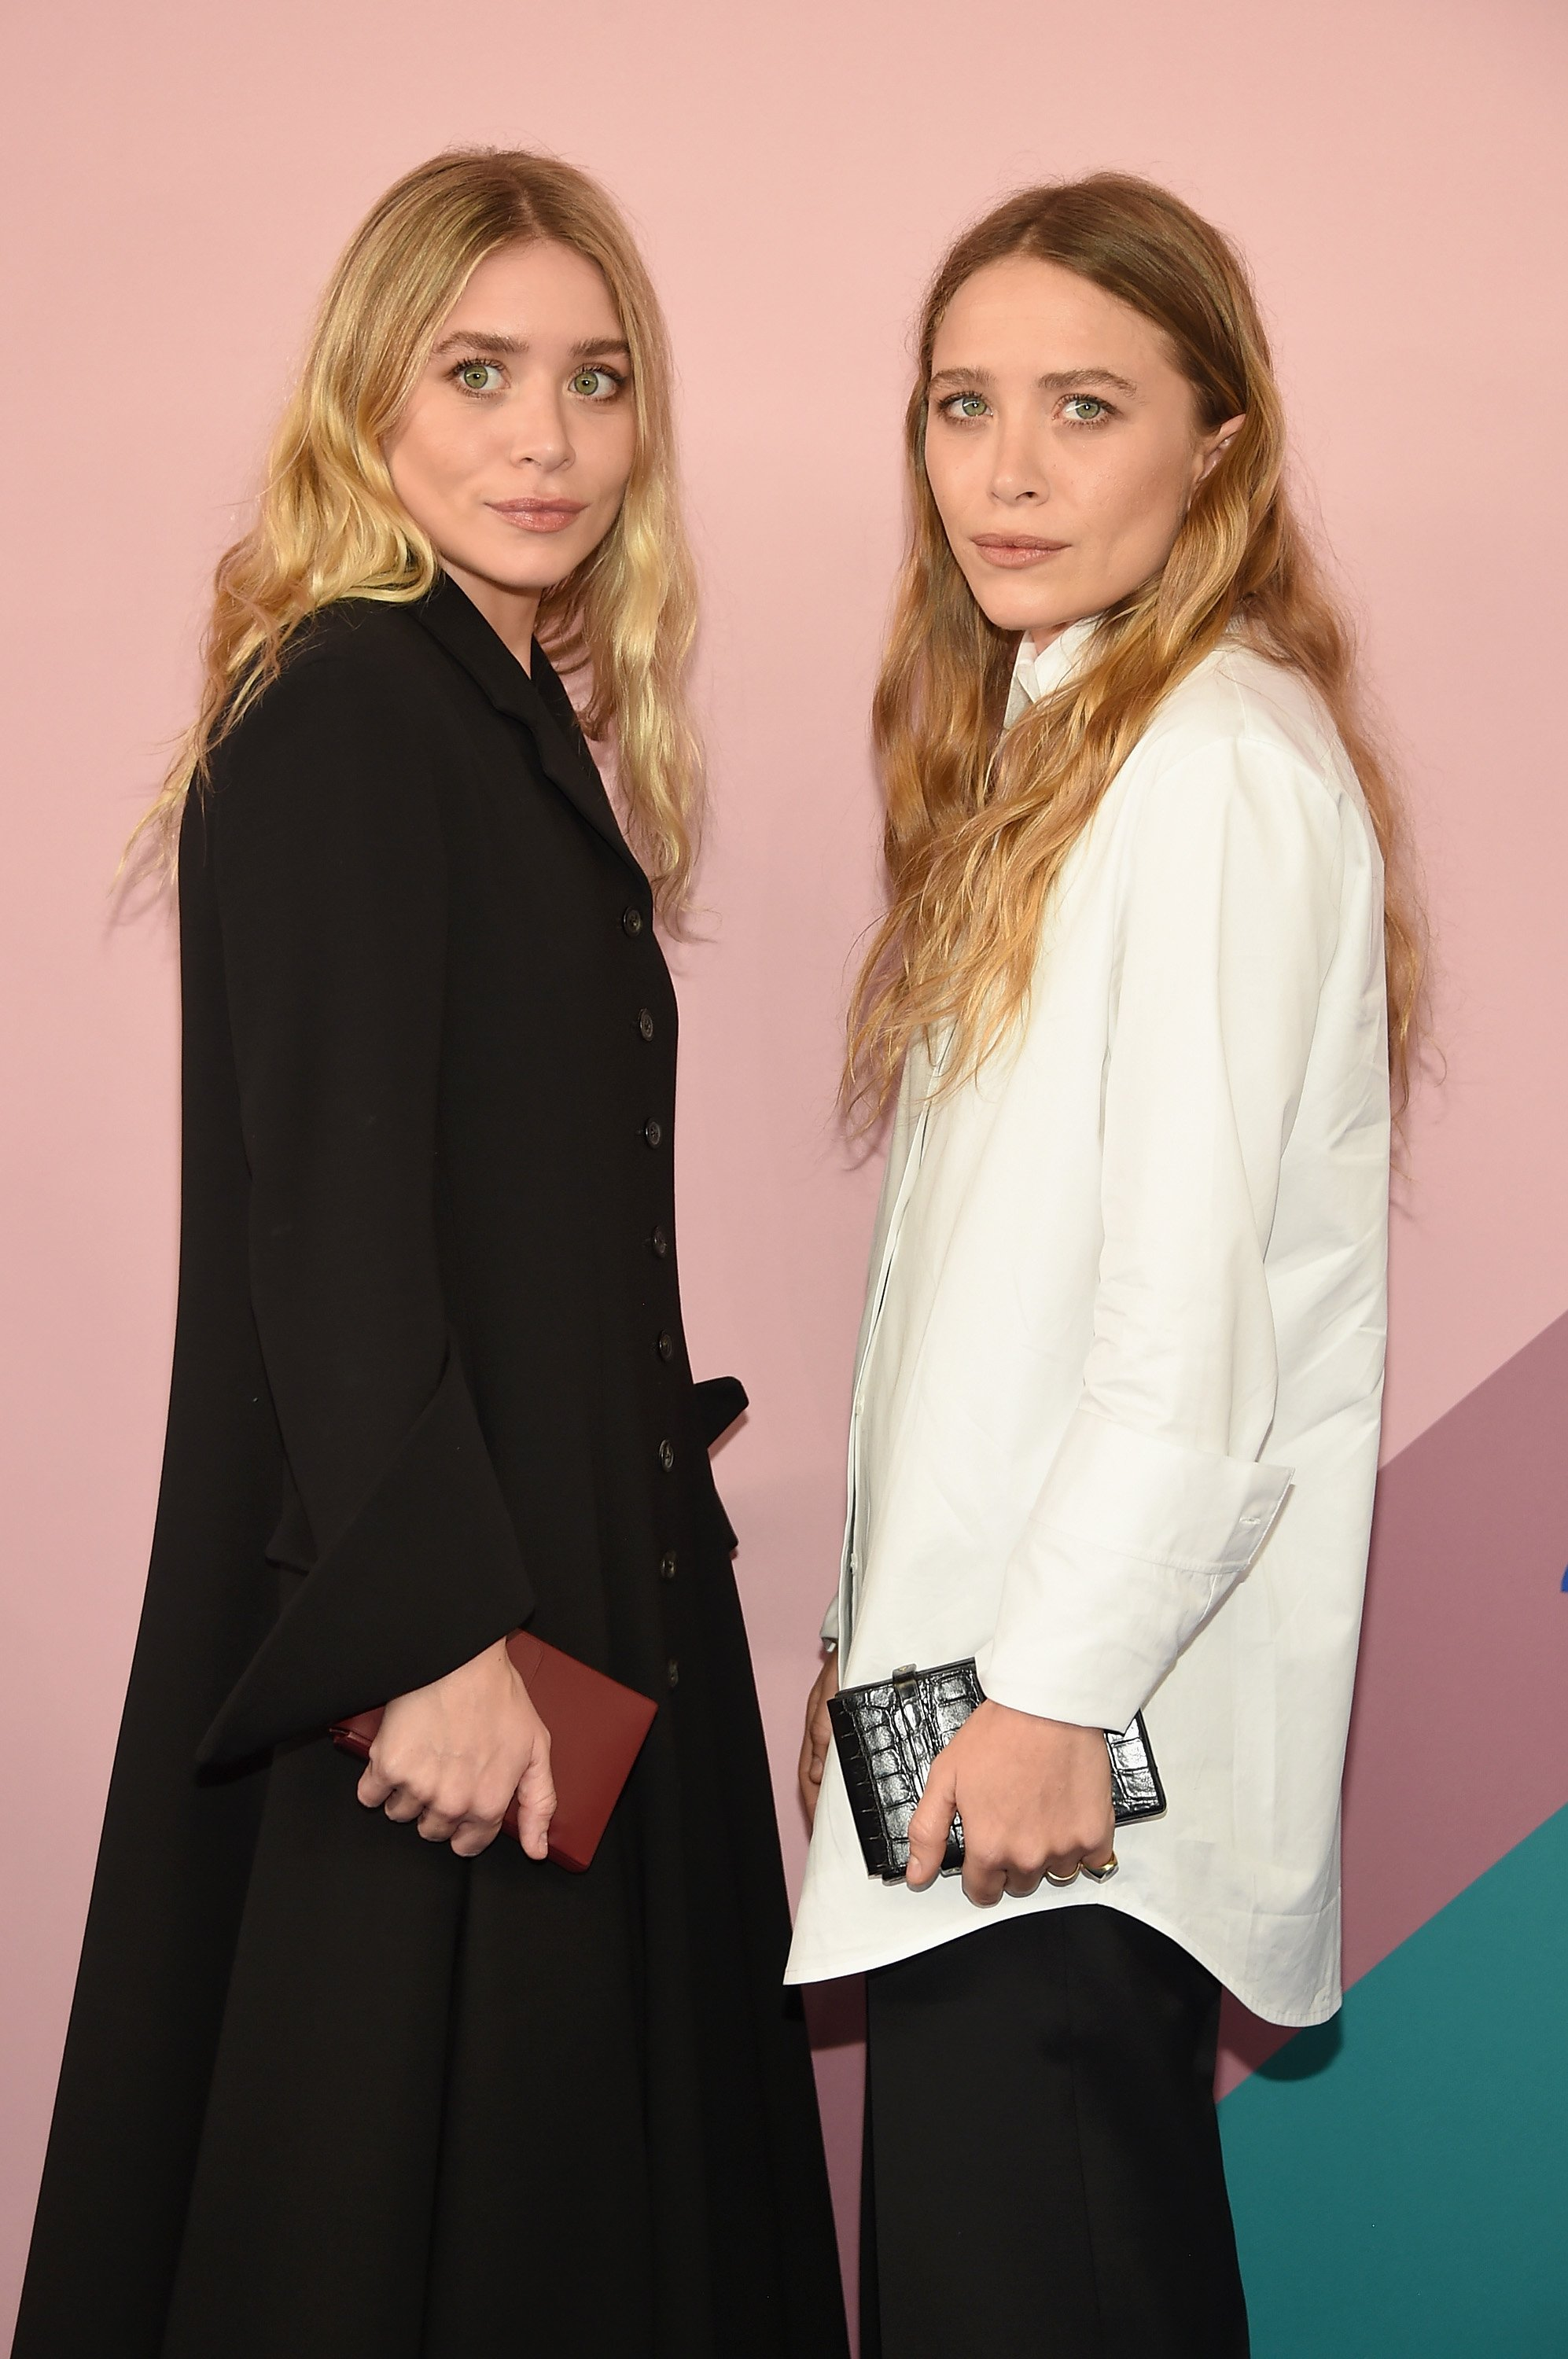 Image Credit: Getty Images/Dimitrios Kambouris | Ashley Olsen and Mary-Kate Olsen attend the 2017 CFDA Fashion Awards